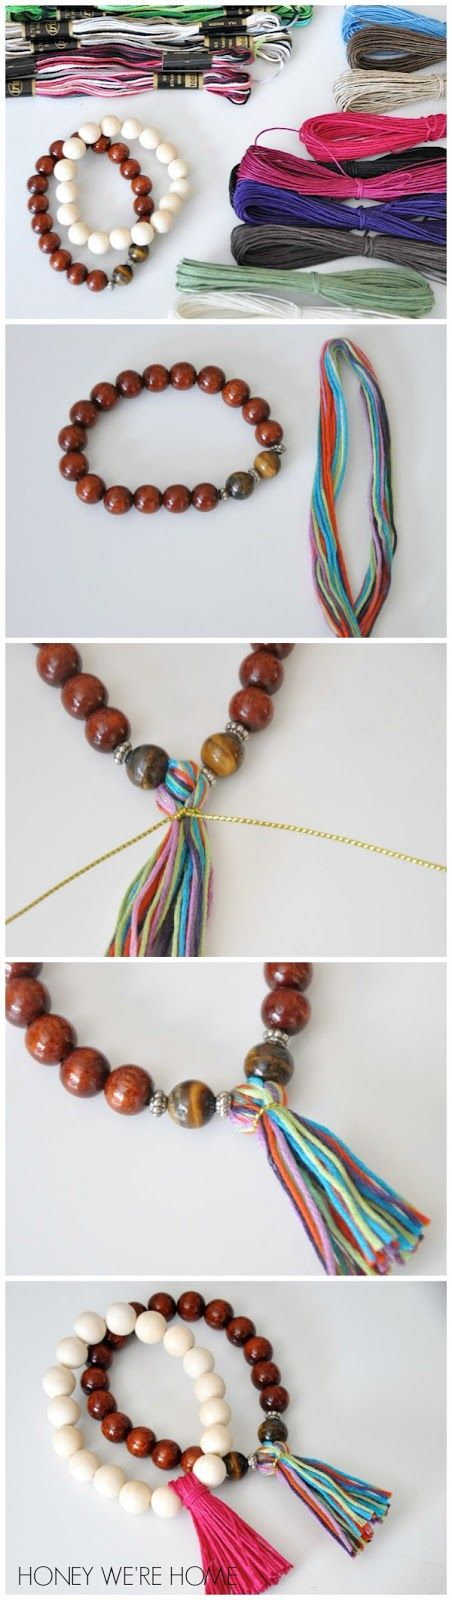 DIY tassel bracelet / Honey We're Home